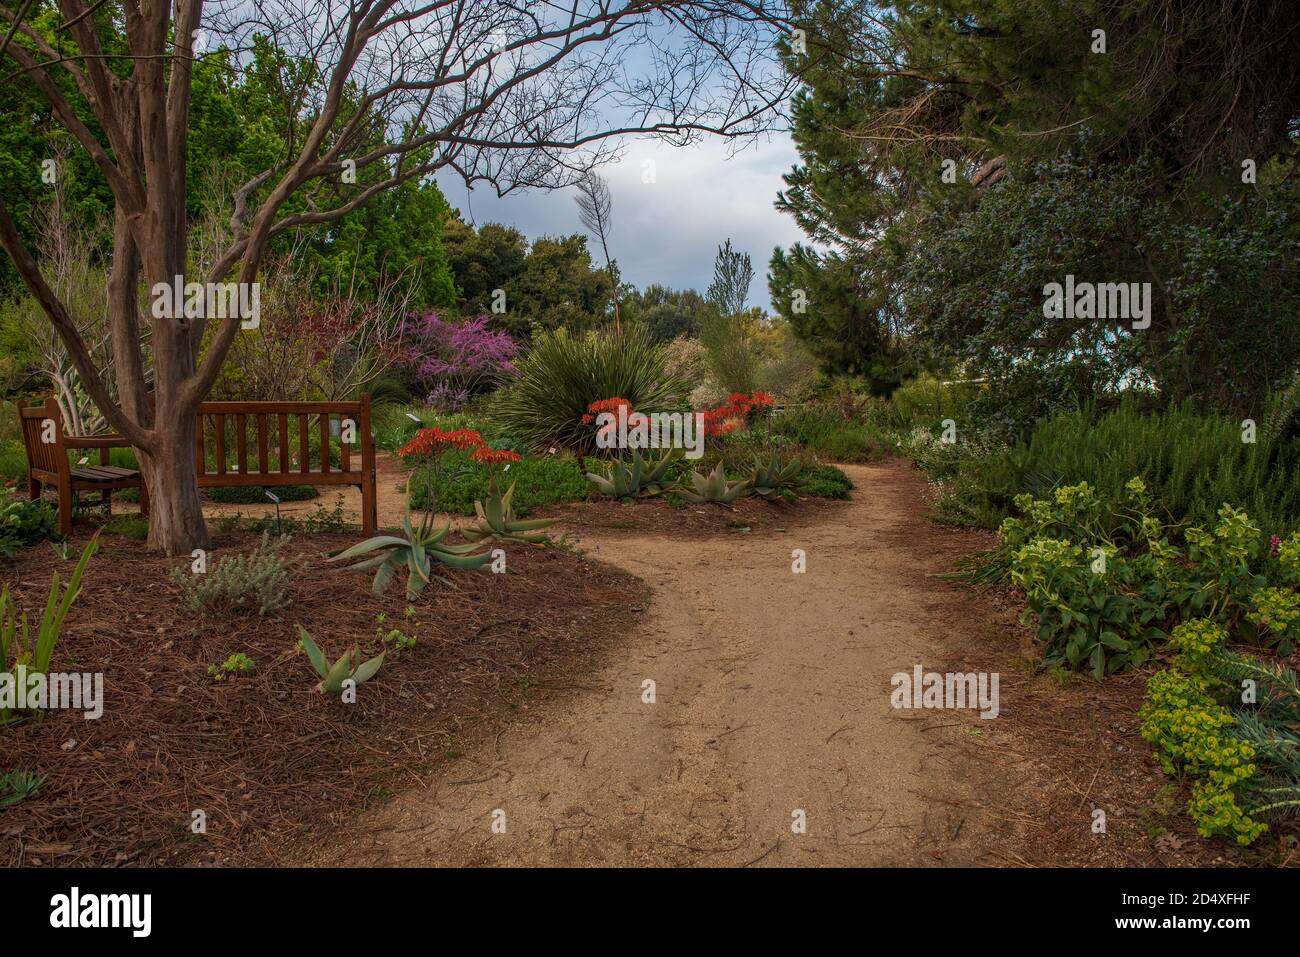 Davis California Usa November 28 2019 Path To A Garden With Aloe Redbud And Other Flowers At The Uc Davis Arboretum In The Spring On A Sunny Stock Photo Alamy